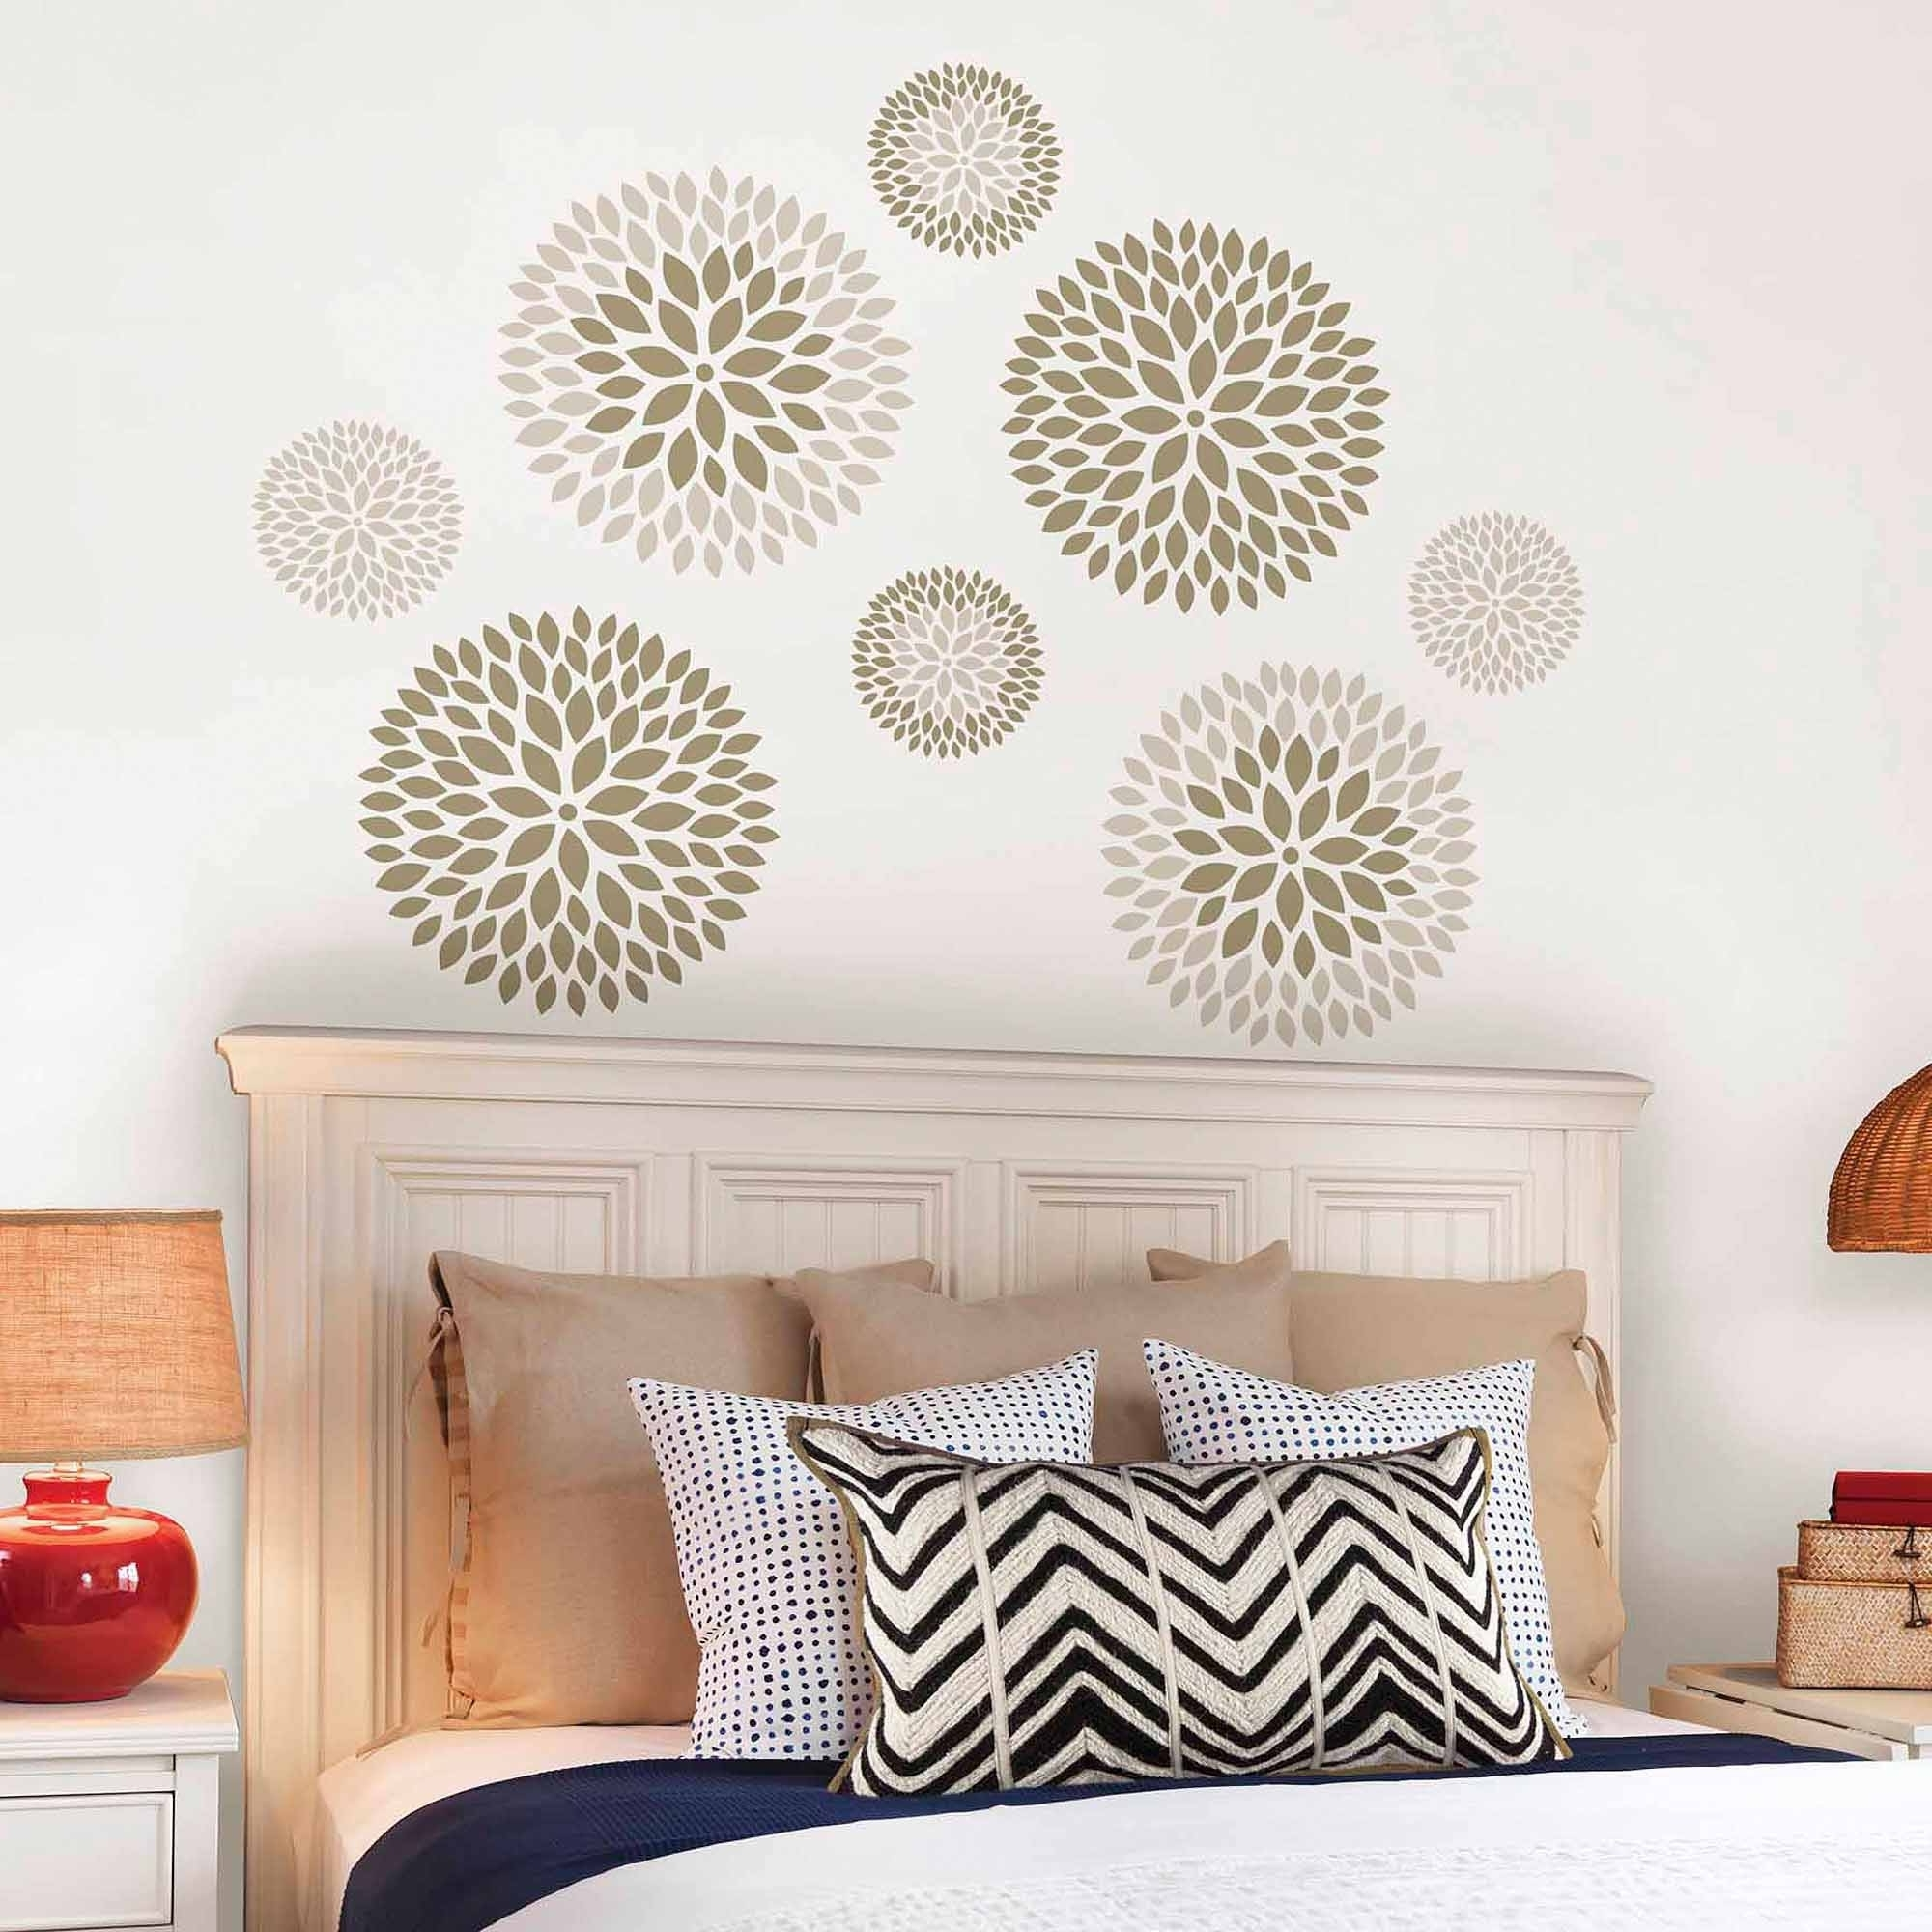 Newest Vinyl Wall Decals Walmart Awesome Fine Walmart Wall Art Decor Inside Wall Art At Walmart (View 5 of 15)